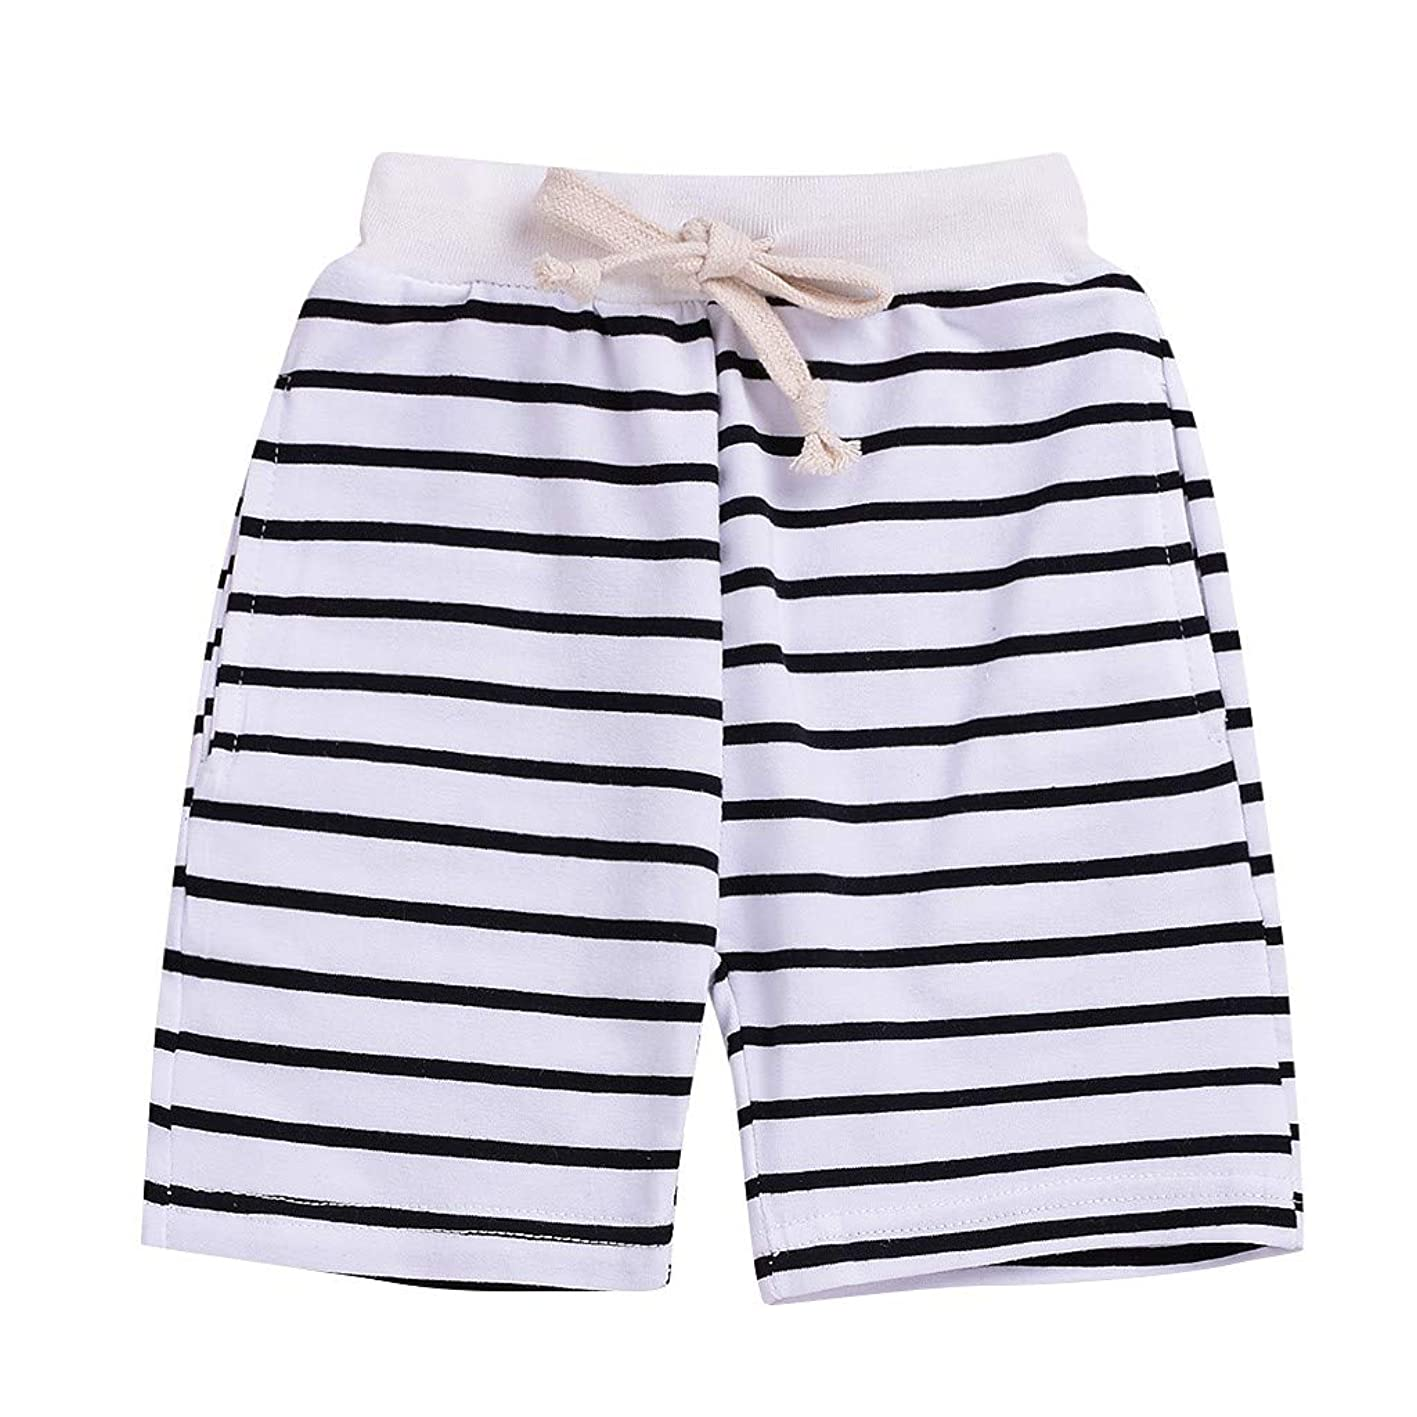 Youmymine Children Kids Boys Girls Pant Summer Comfort Striped Print Lace-up Shorts Pants amylbmaeqgj511